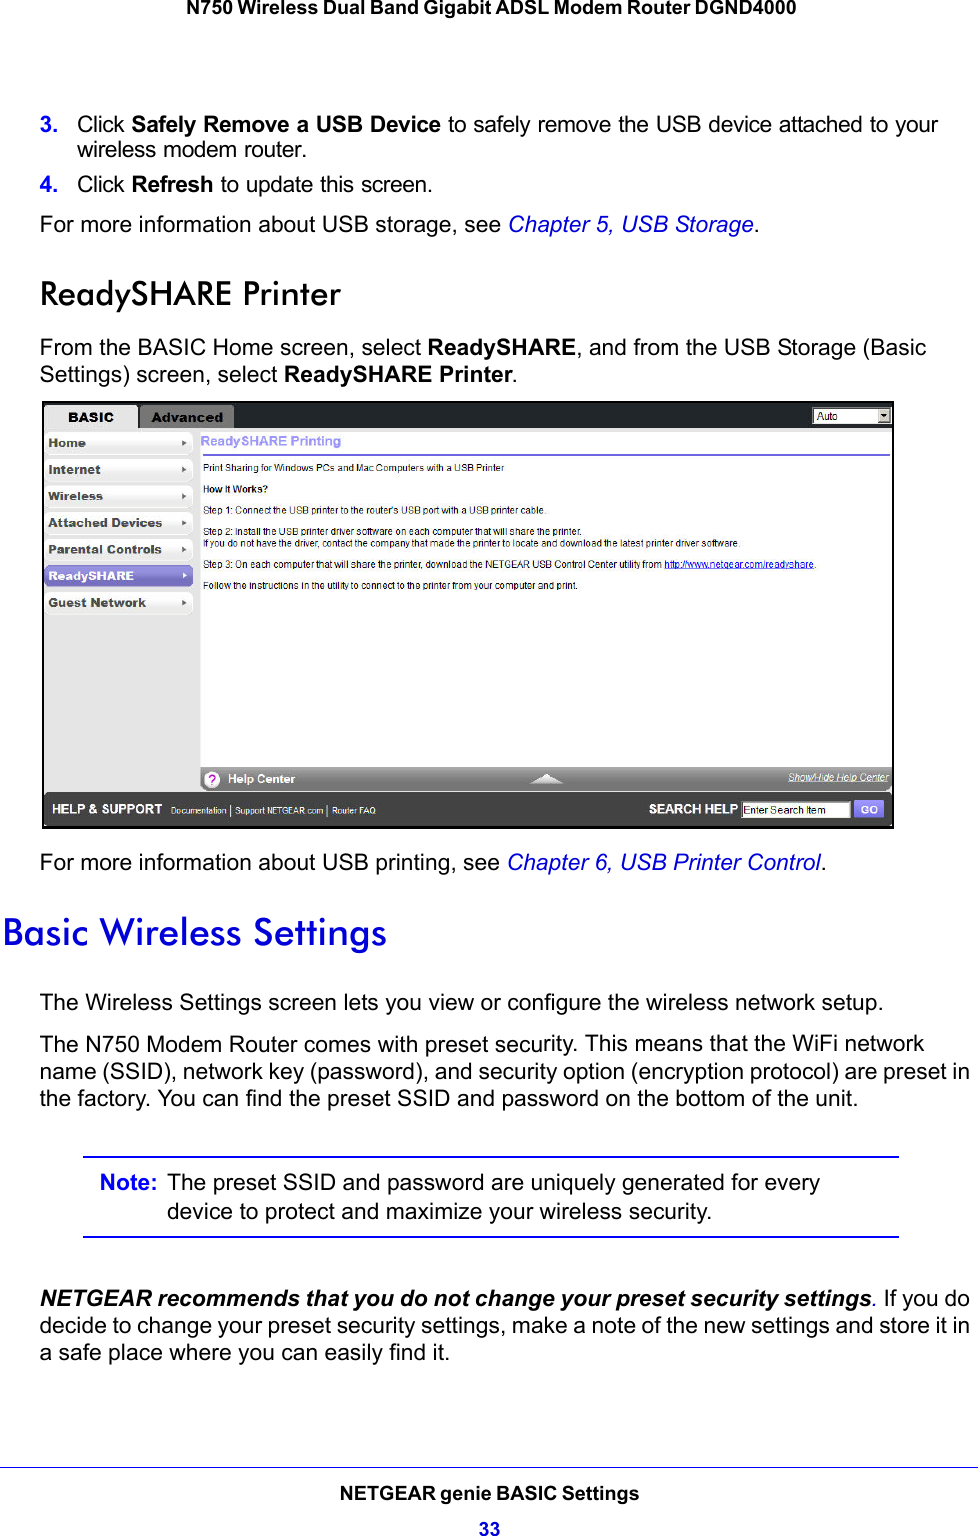 Netgear Dgnd4000 Owner S Manual N750 Wireless Dual Band